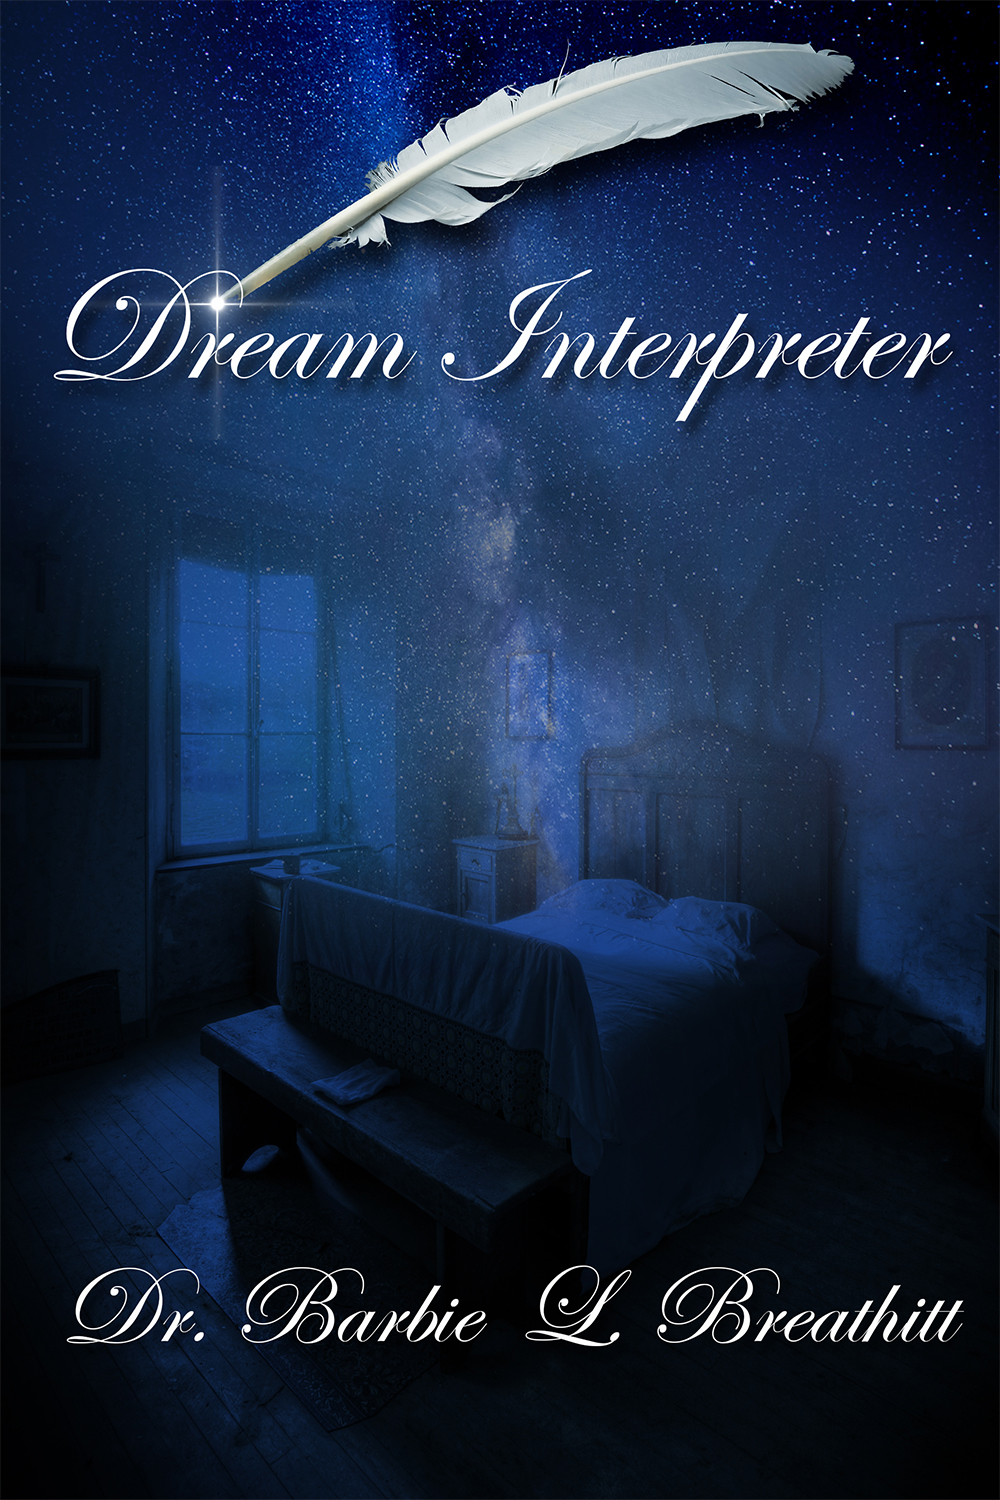 Dream+Interpreter+web.jpg